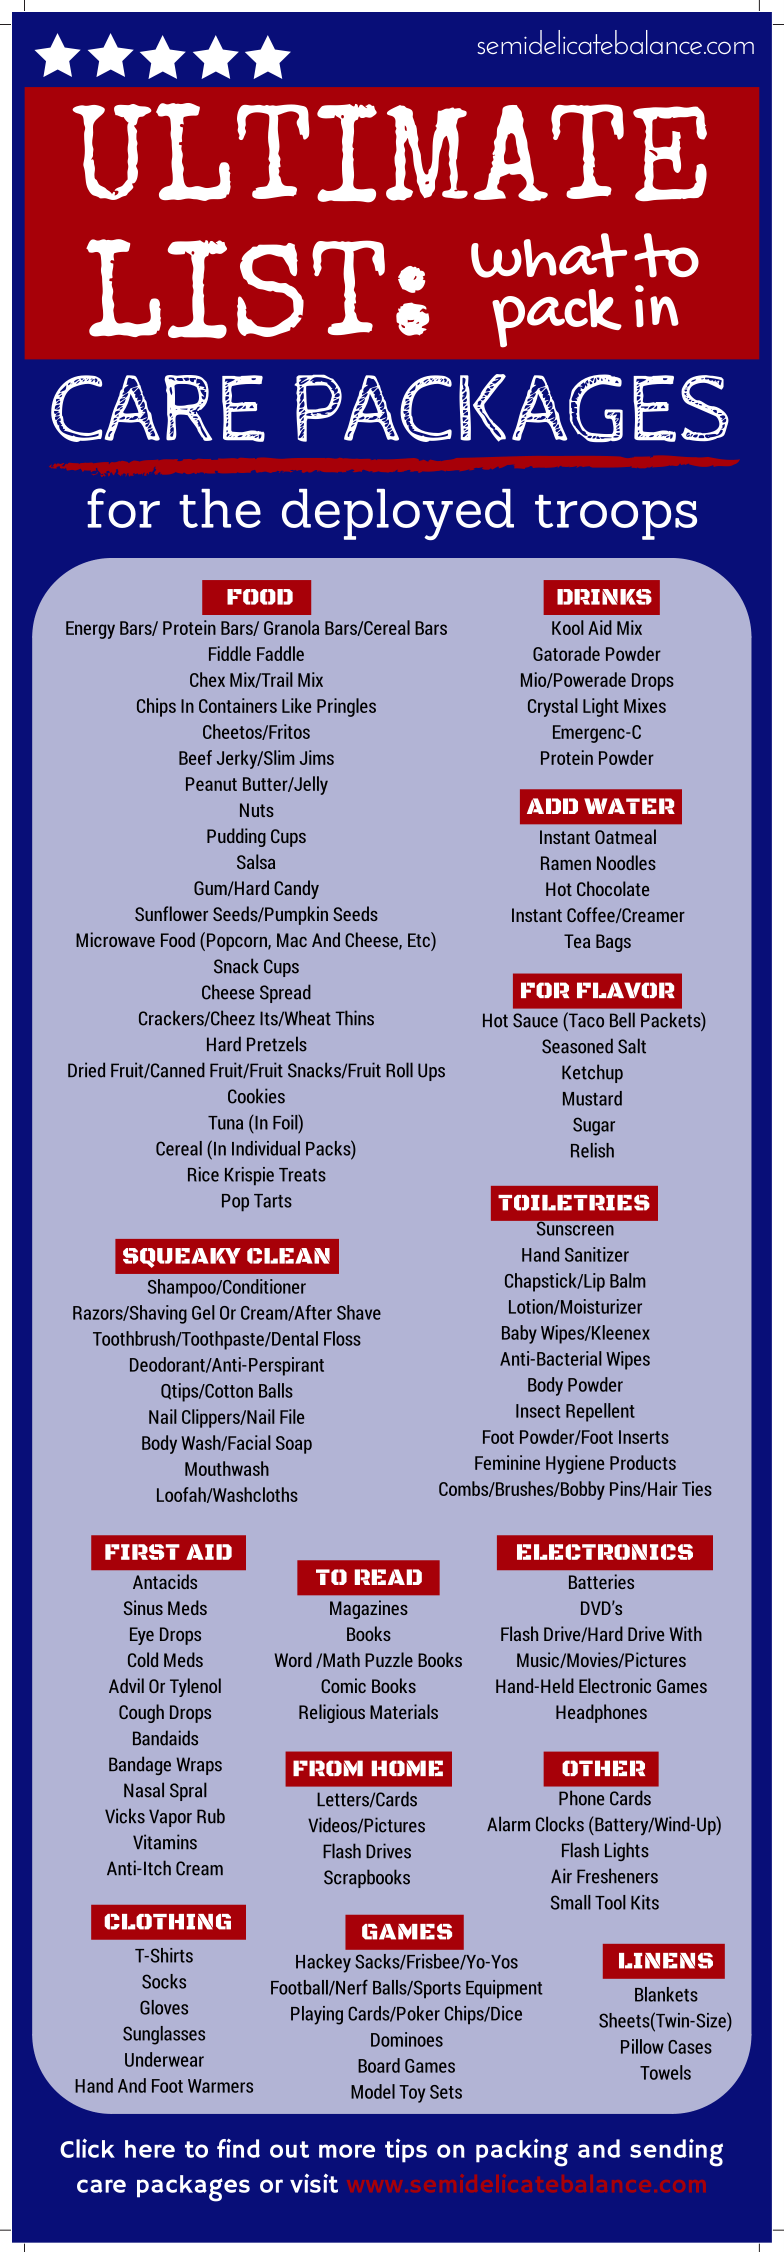 What To Pack In Care Packages For Deployed Troops Ultimate List MUST PIN Later